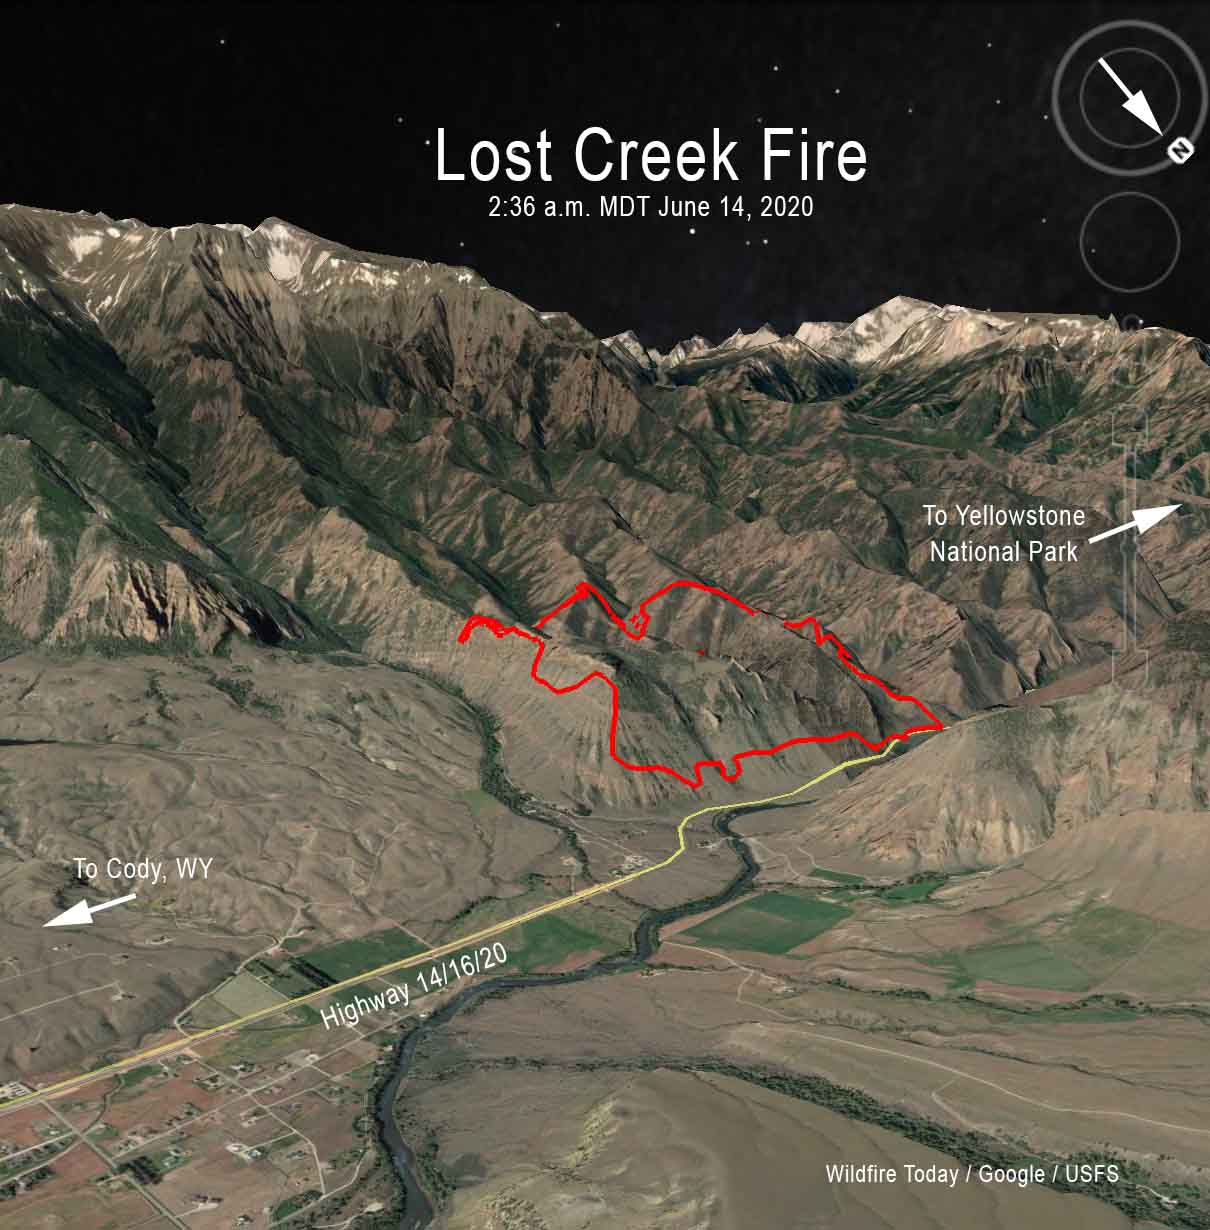 3-D map of the Lost Creek Fire